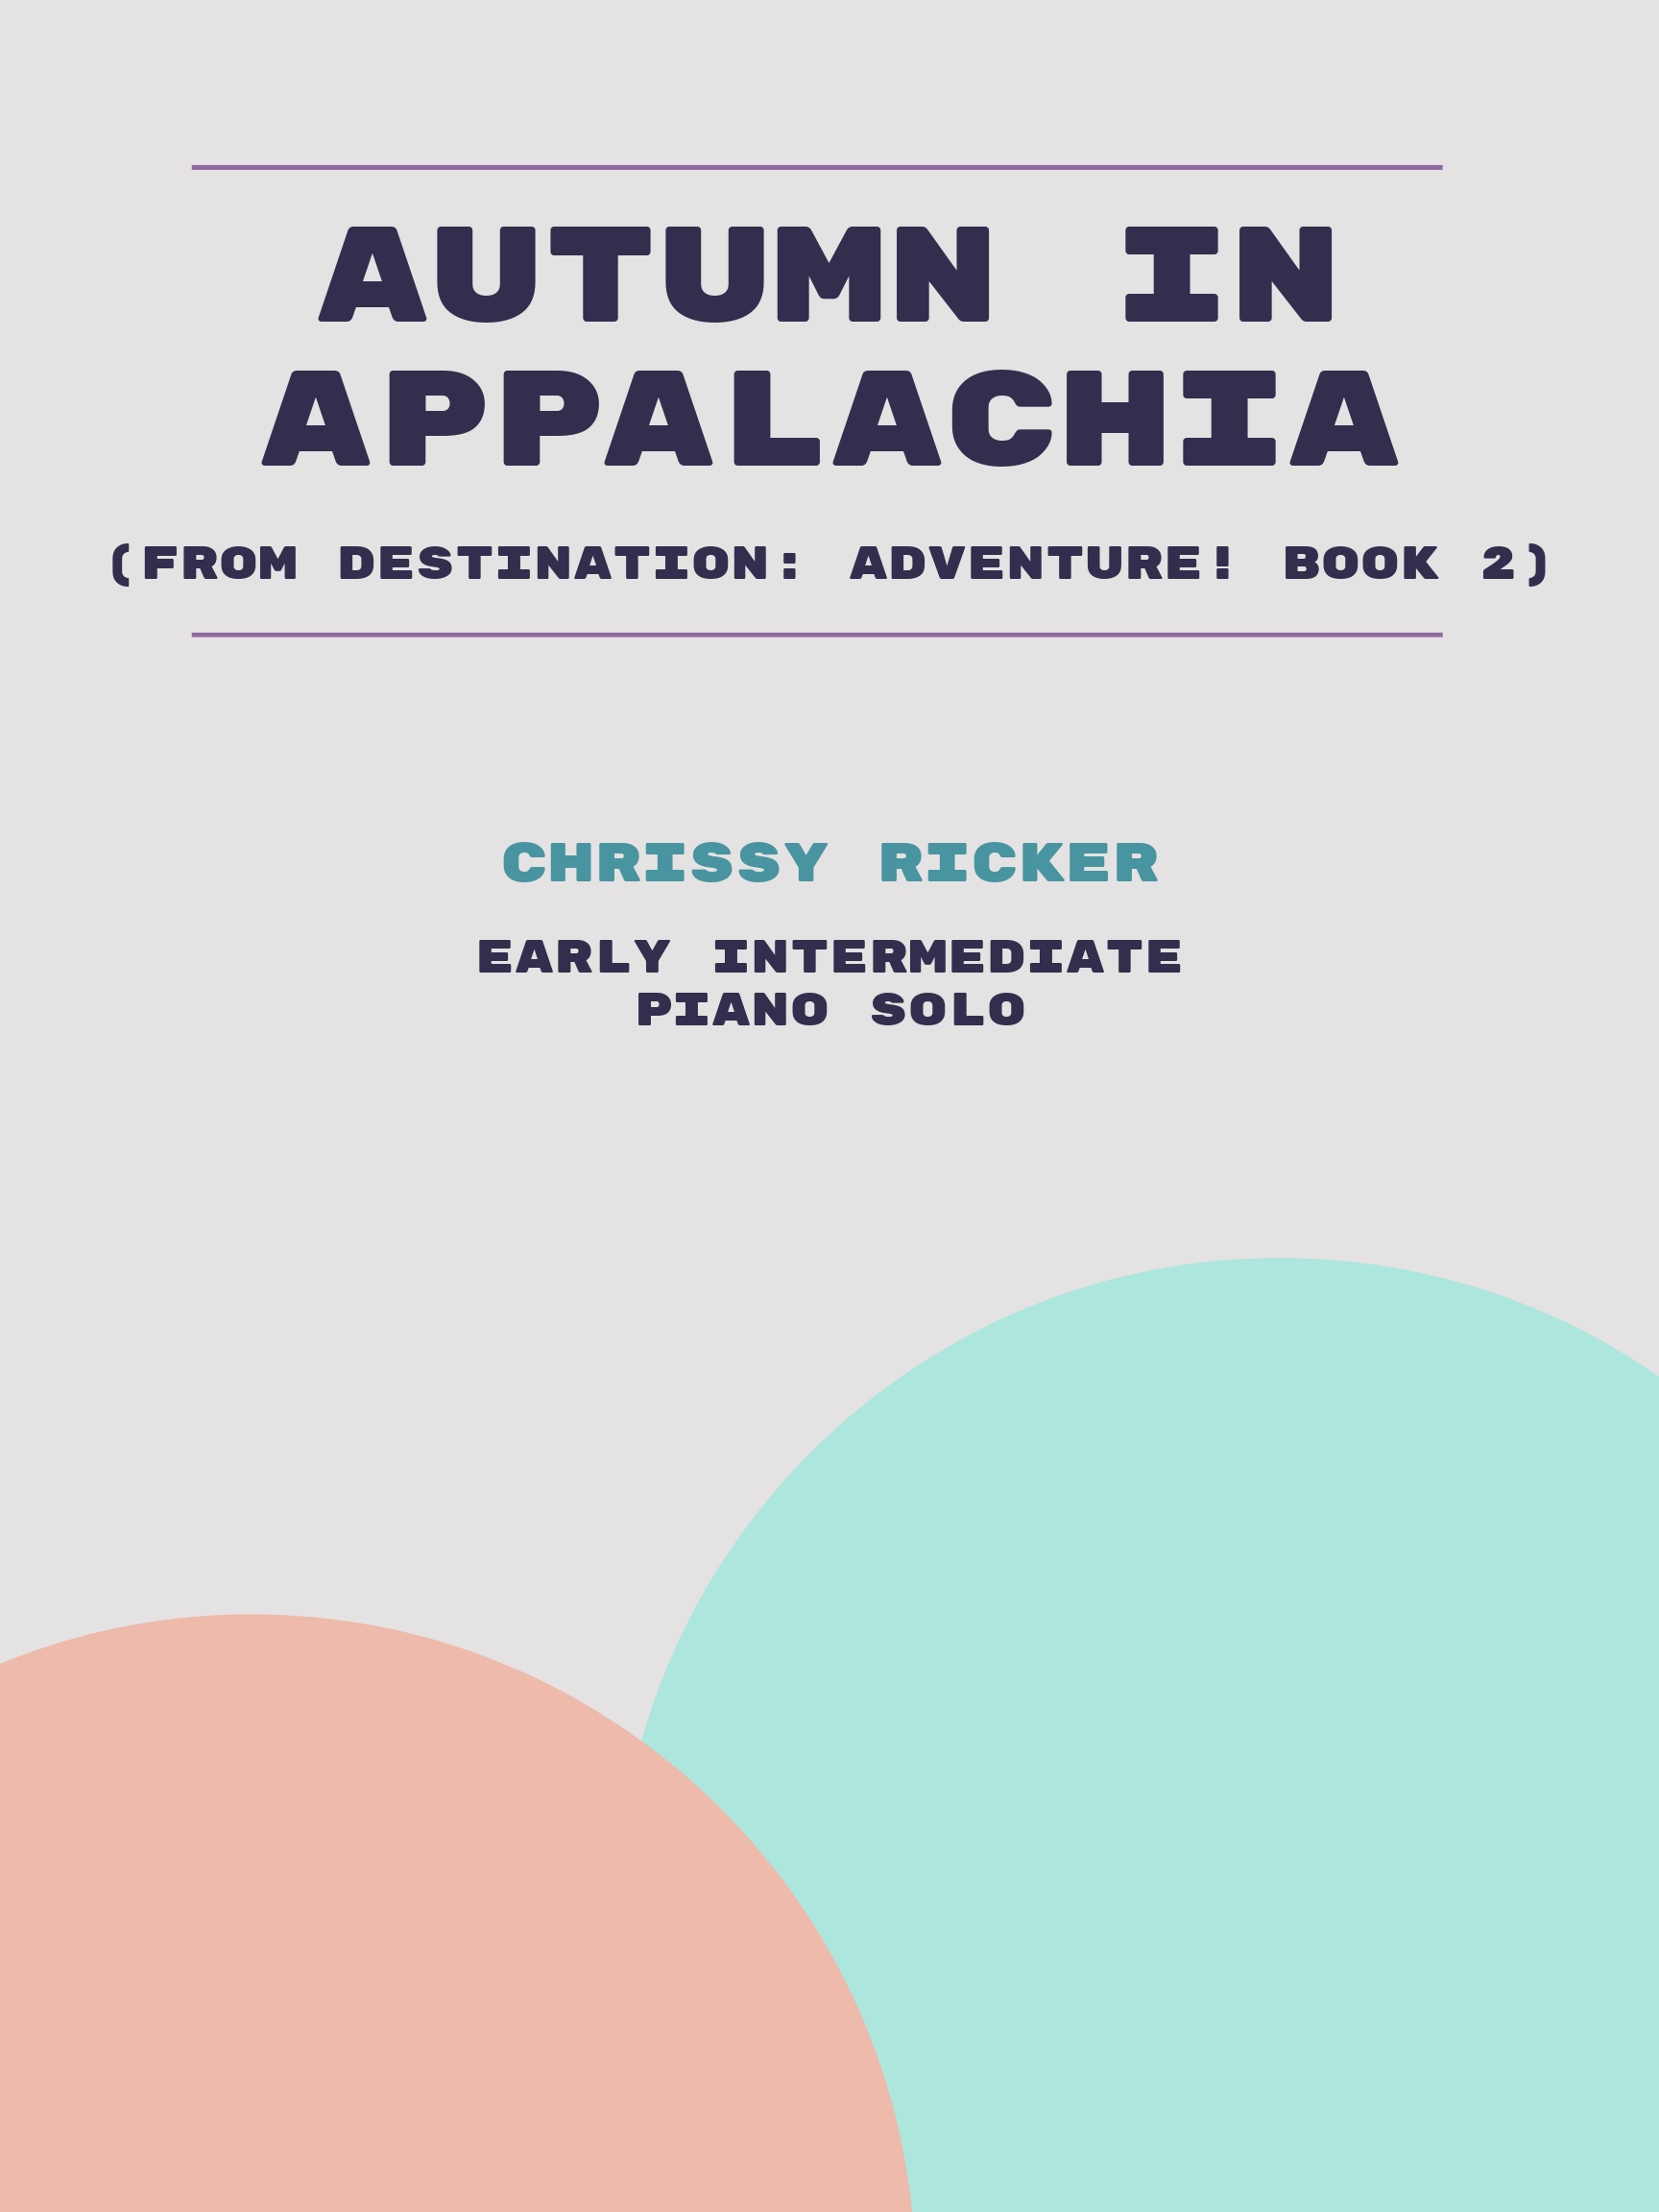 Autumn in Appalachia by Chrissy Ricker